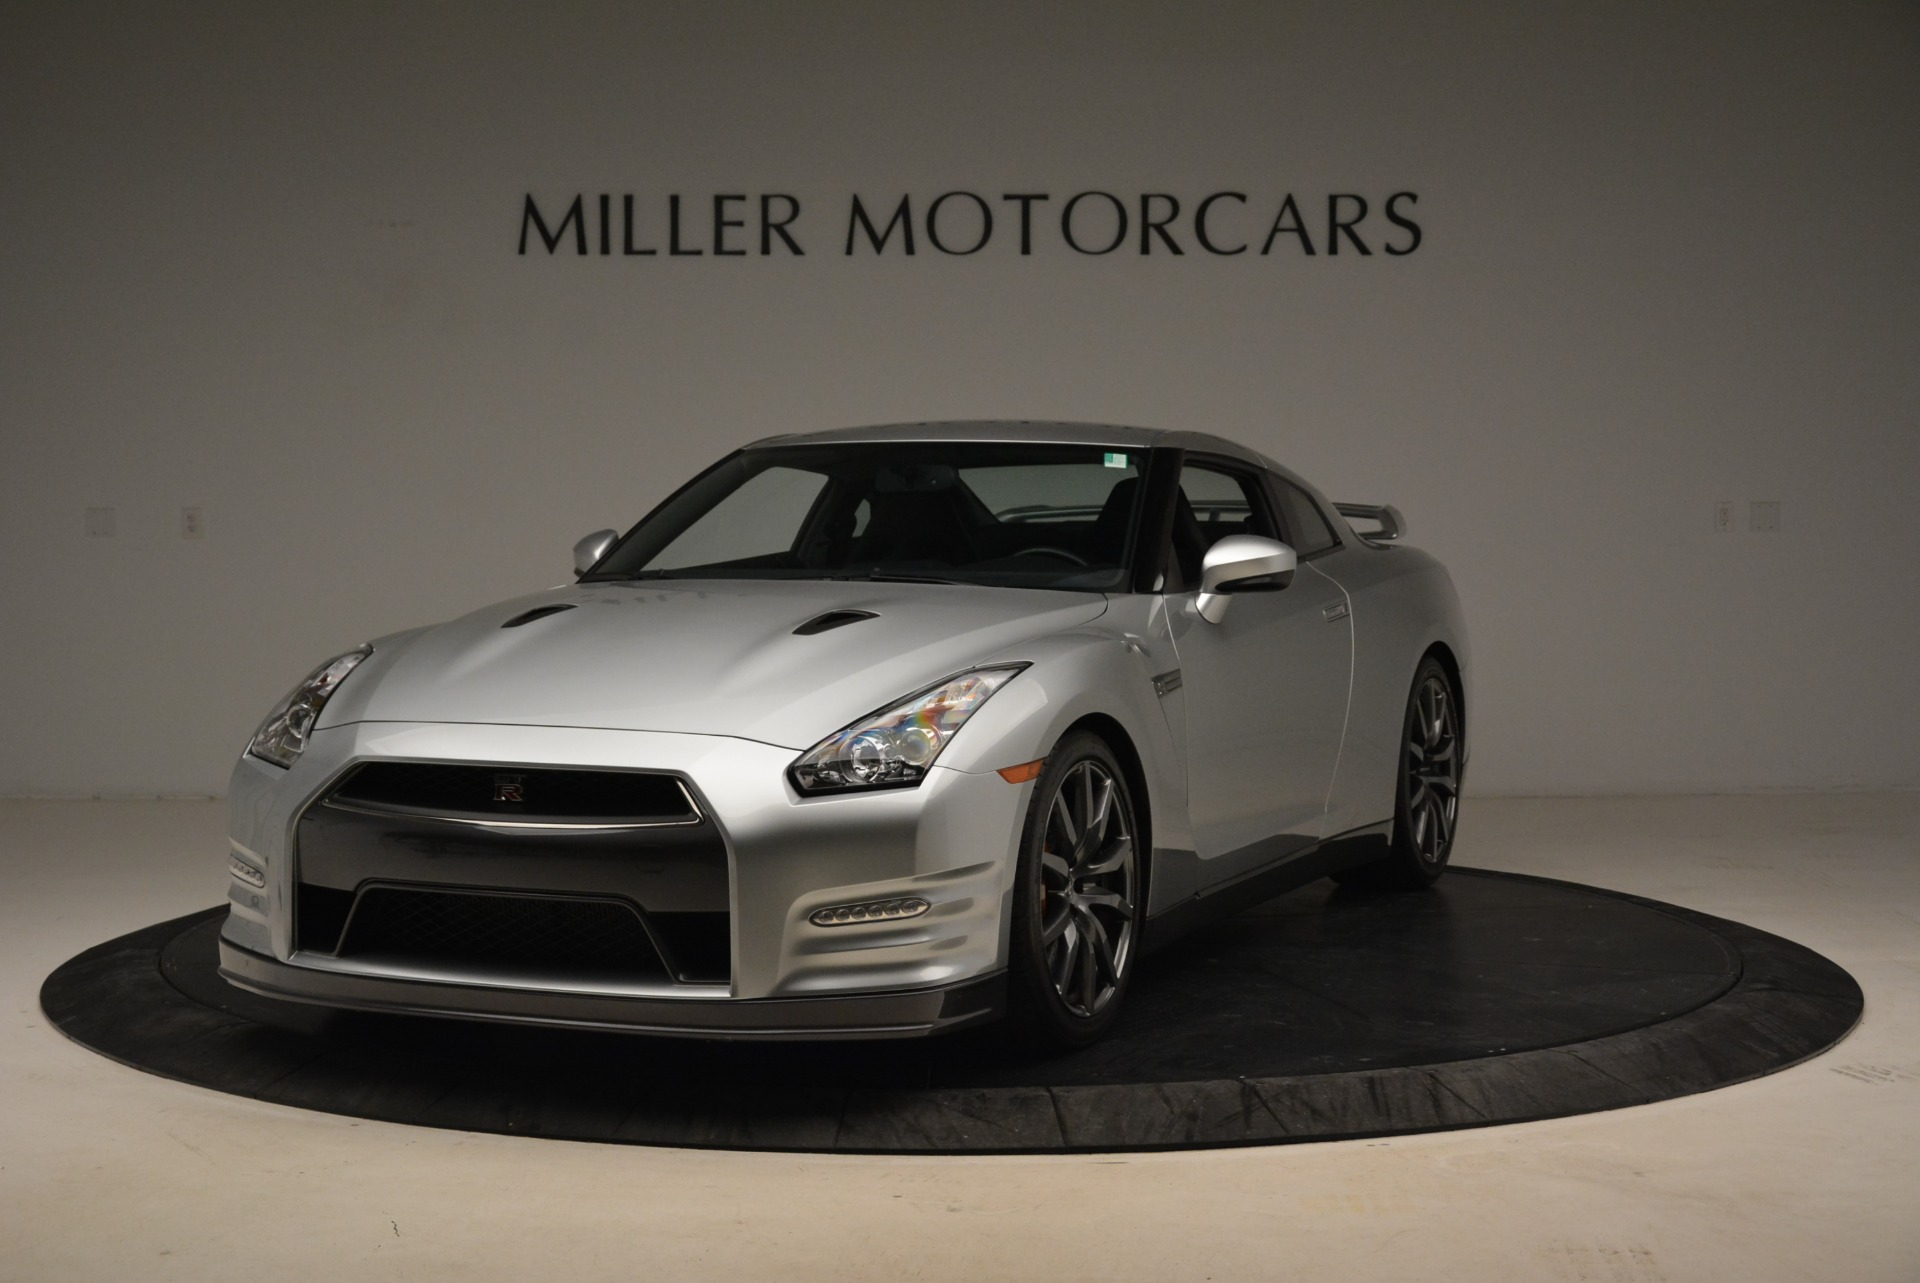 Used 2013 Nissan GT-R Premium for sale Sold at McLaren Greenwich in Greenwich CT 06830 1